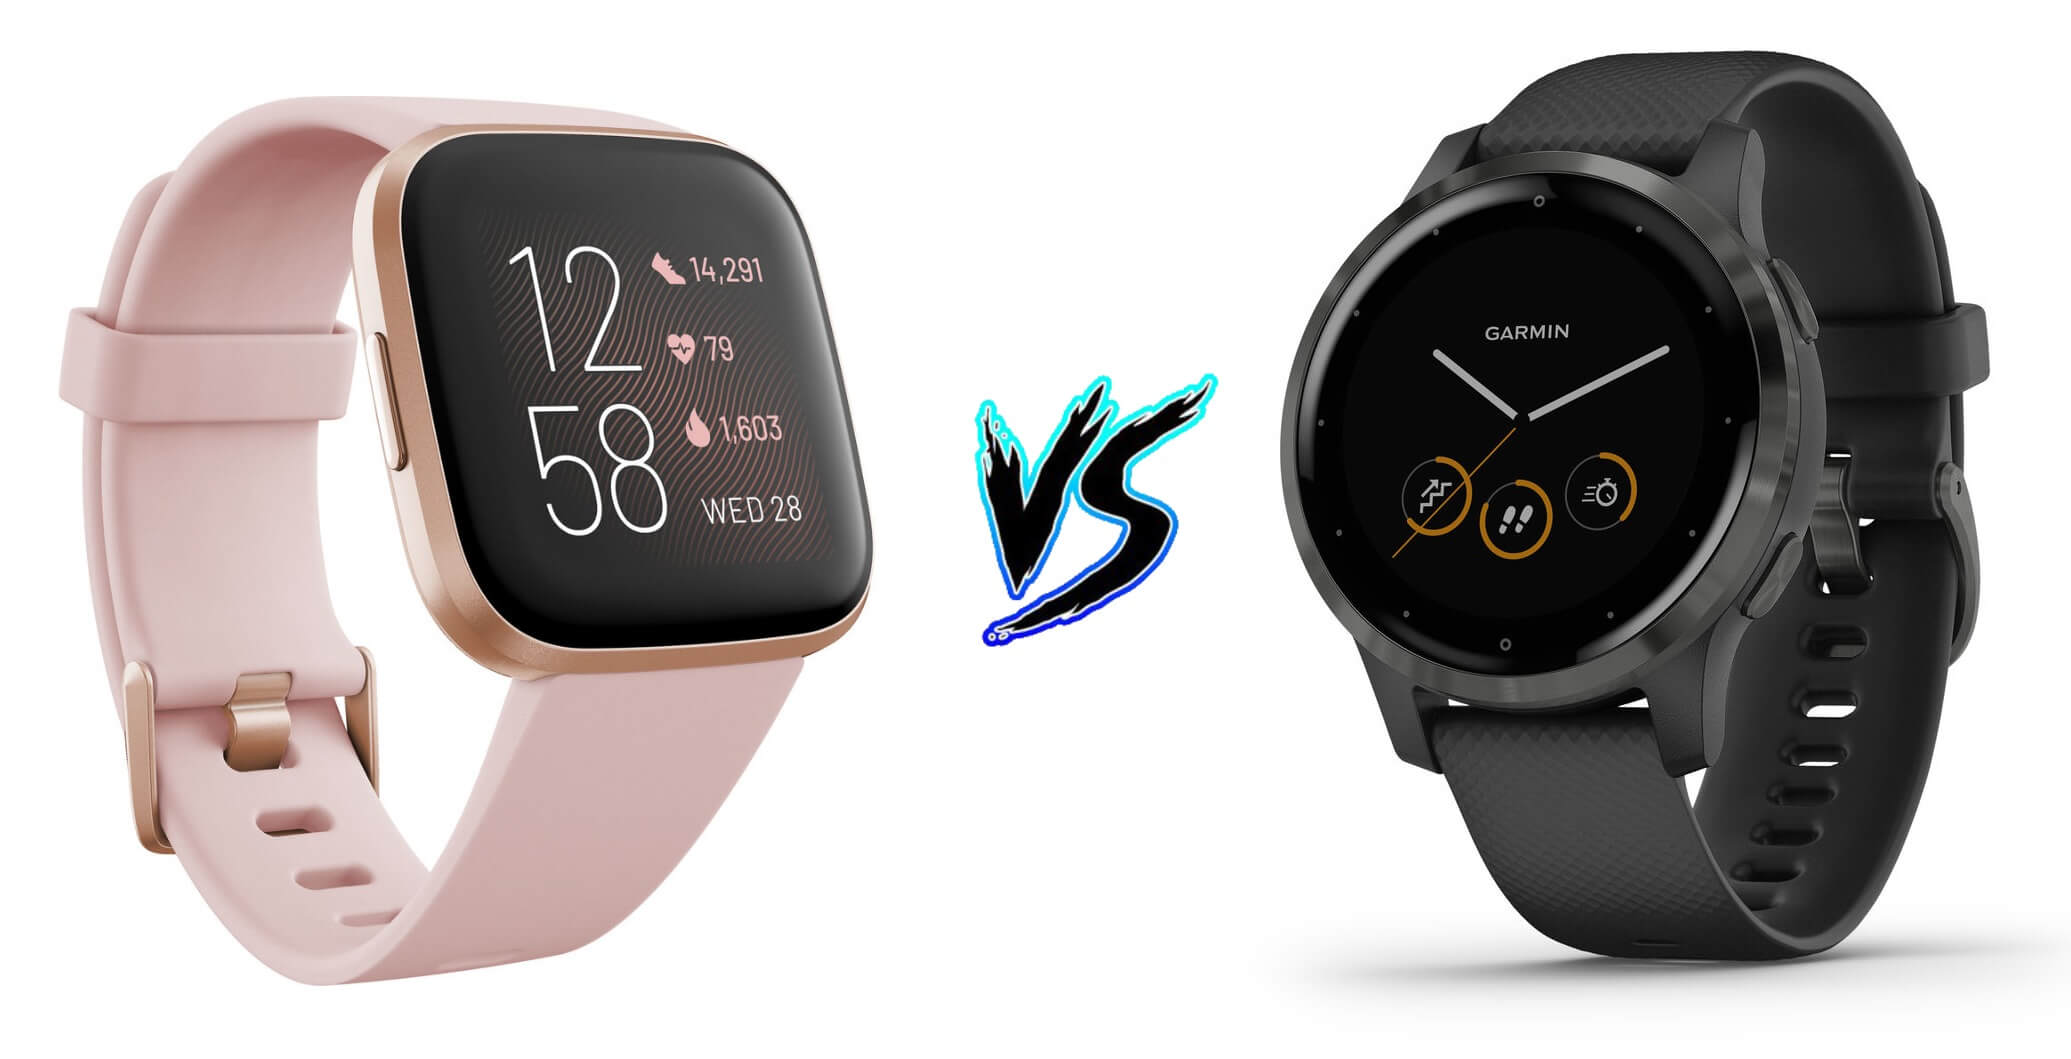 Garmin Vivoactive 4 vs Fitbit Versa 2 – Product Comparison